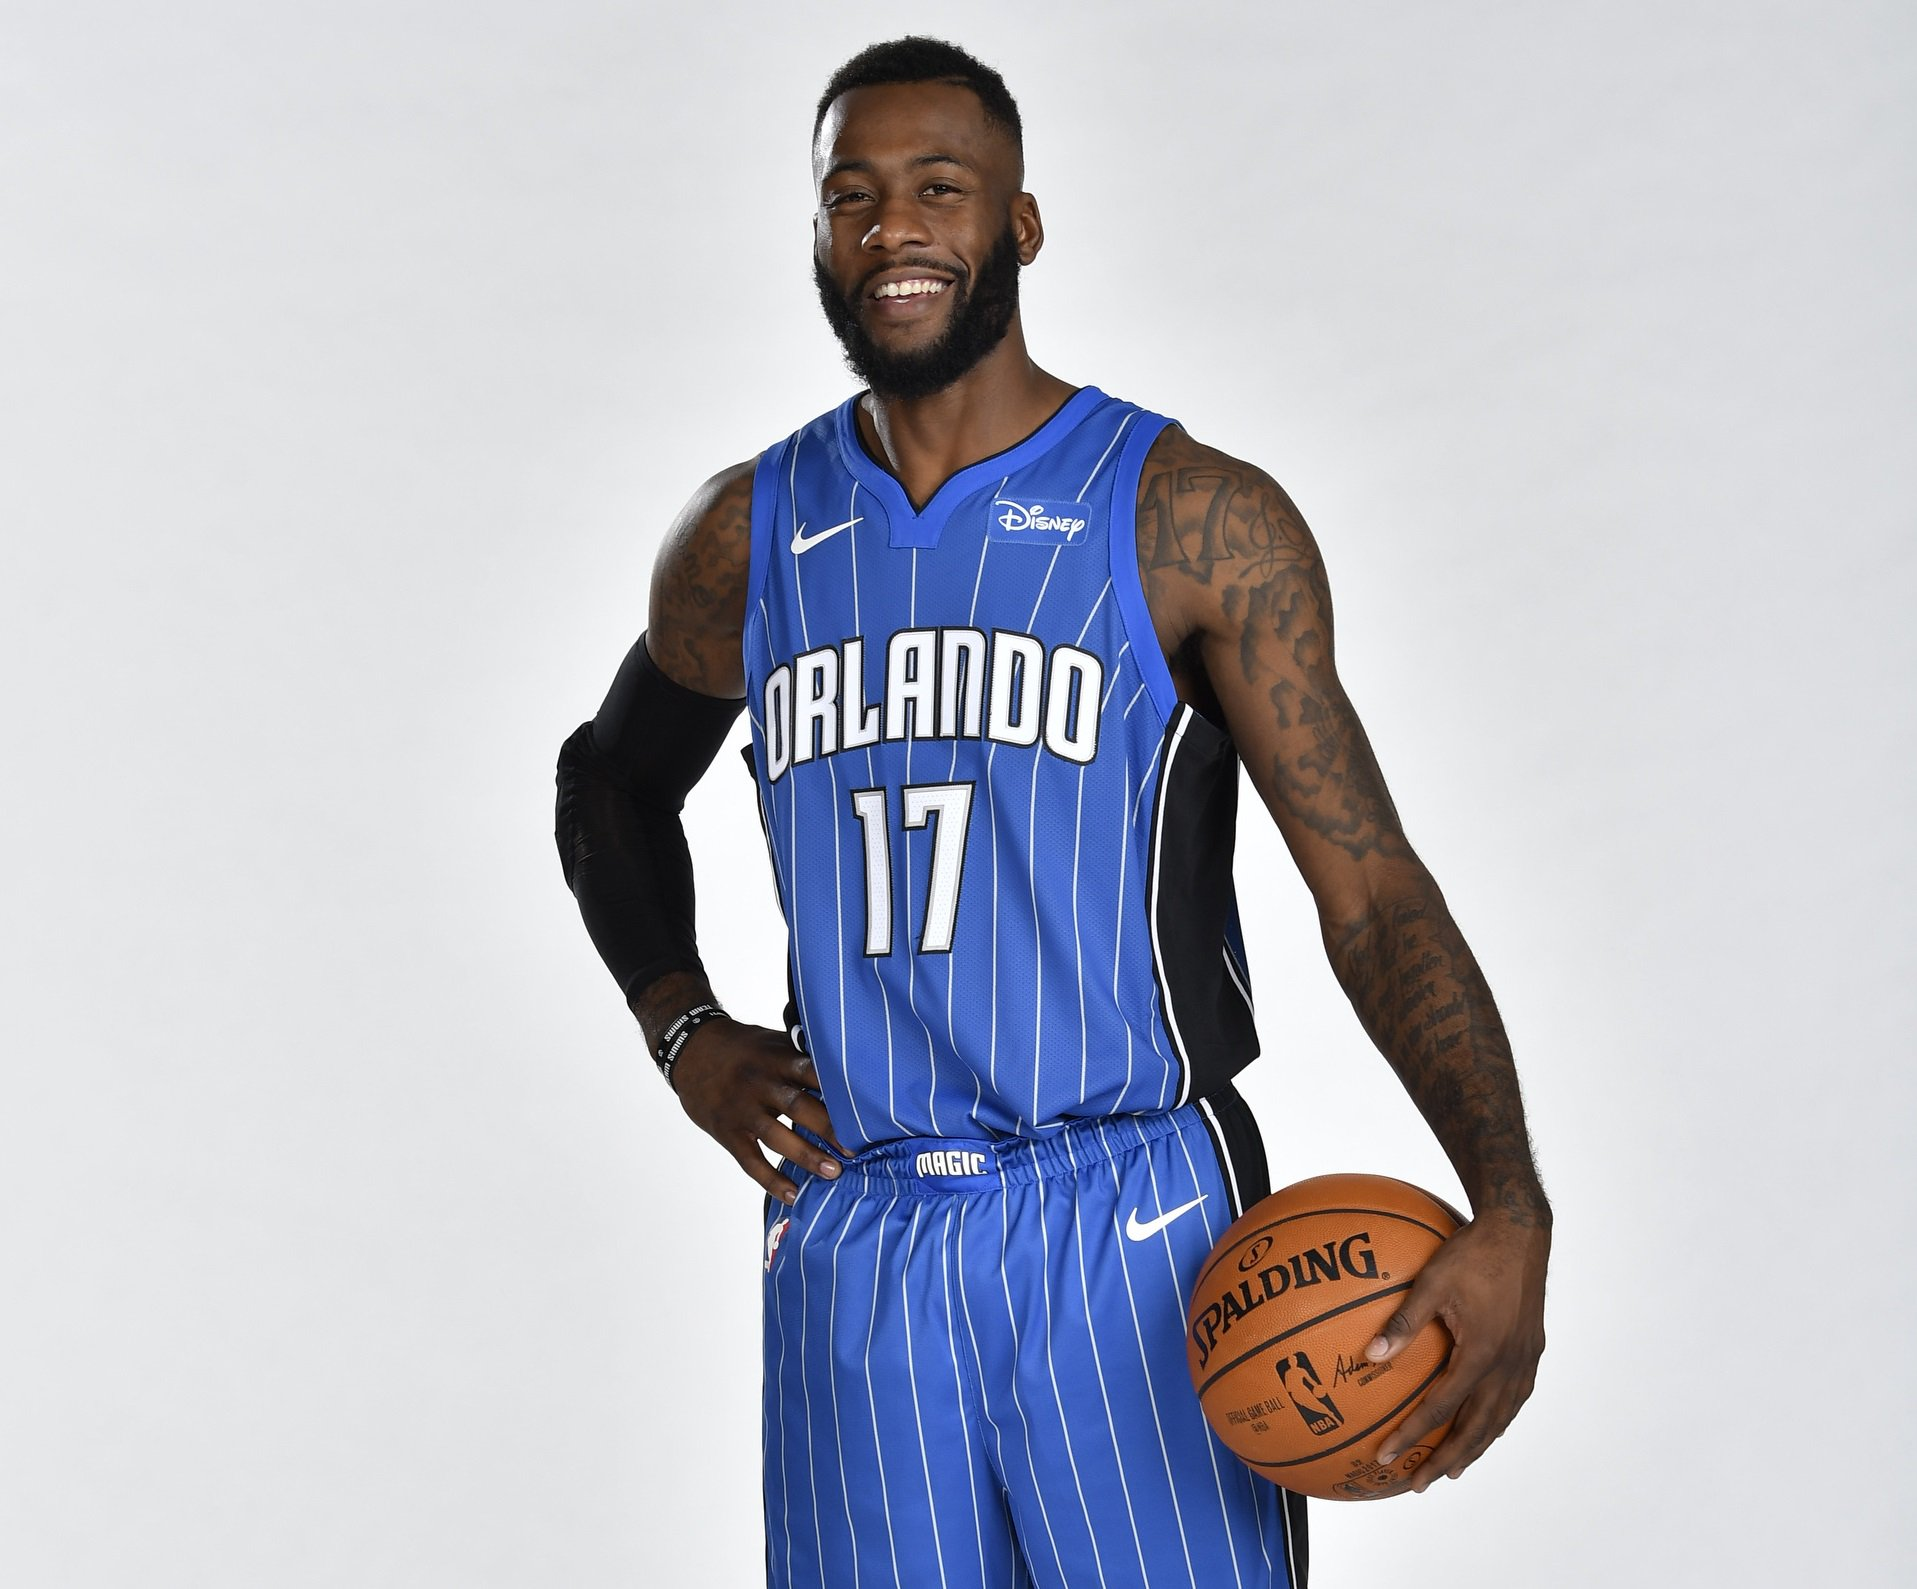 Join us in wishing @ThaRealJsimms of the @OrlandoMagic a HAPPY 29th BIRTHDAY! #NBABDAY https://t.co/s5h67IdLaN